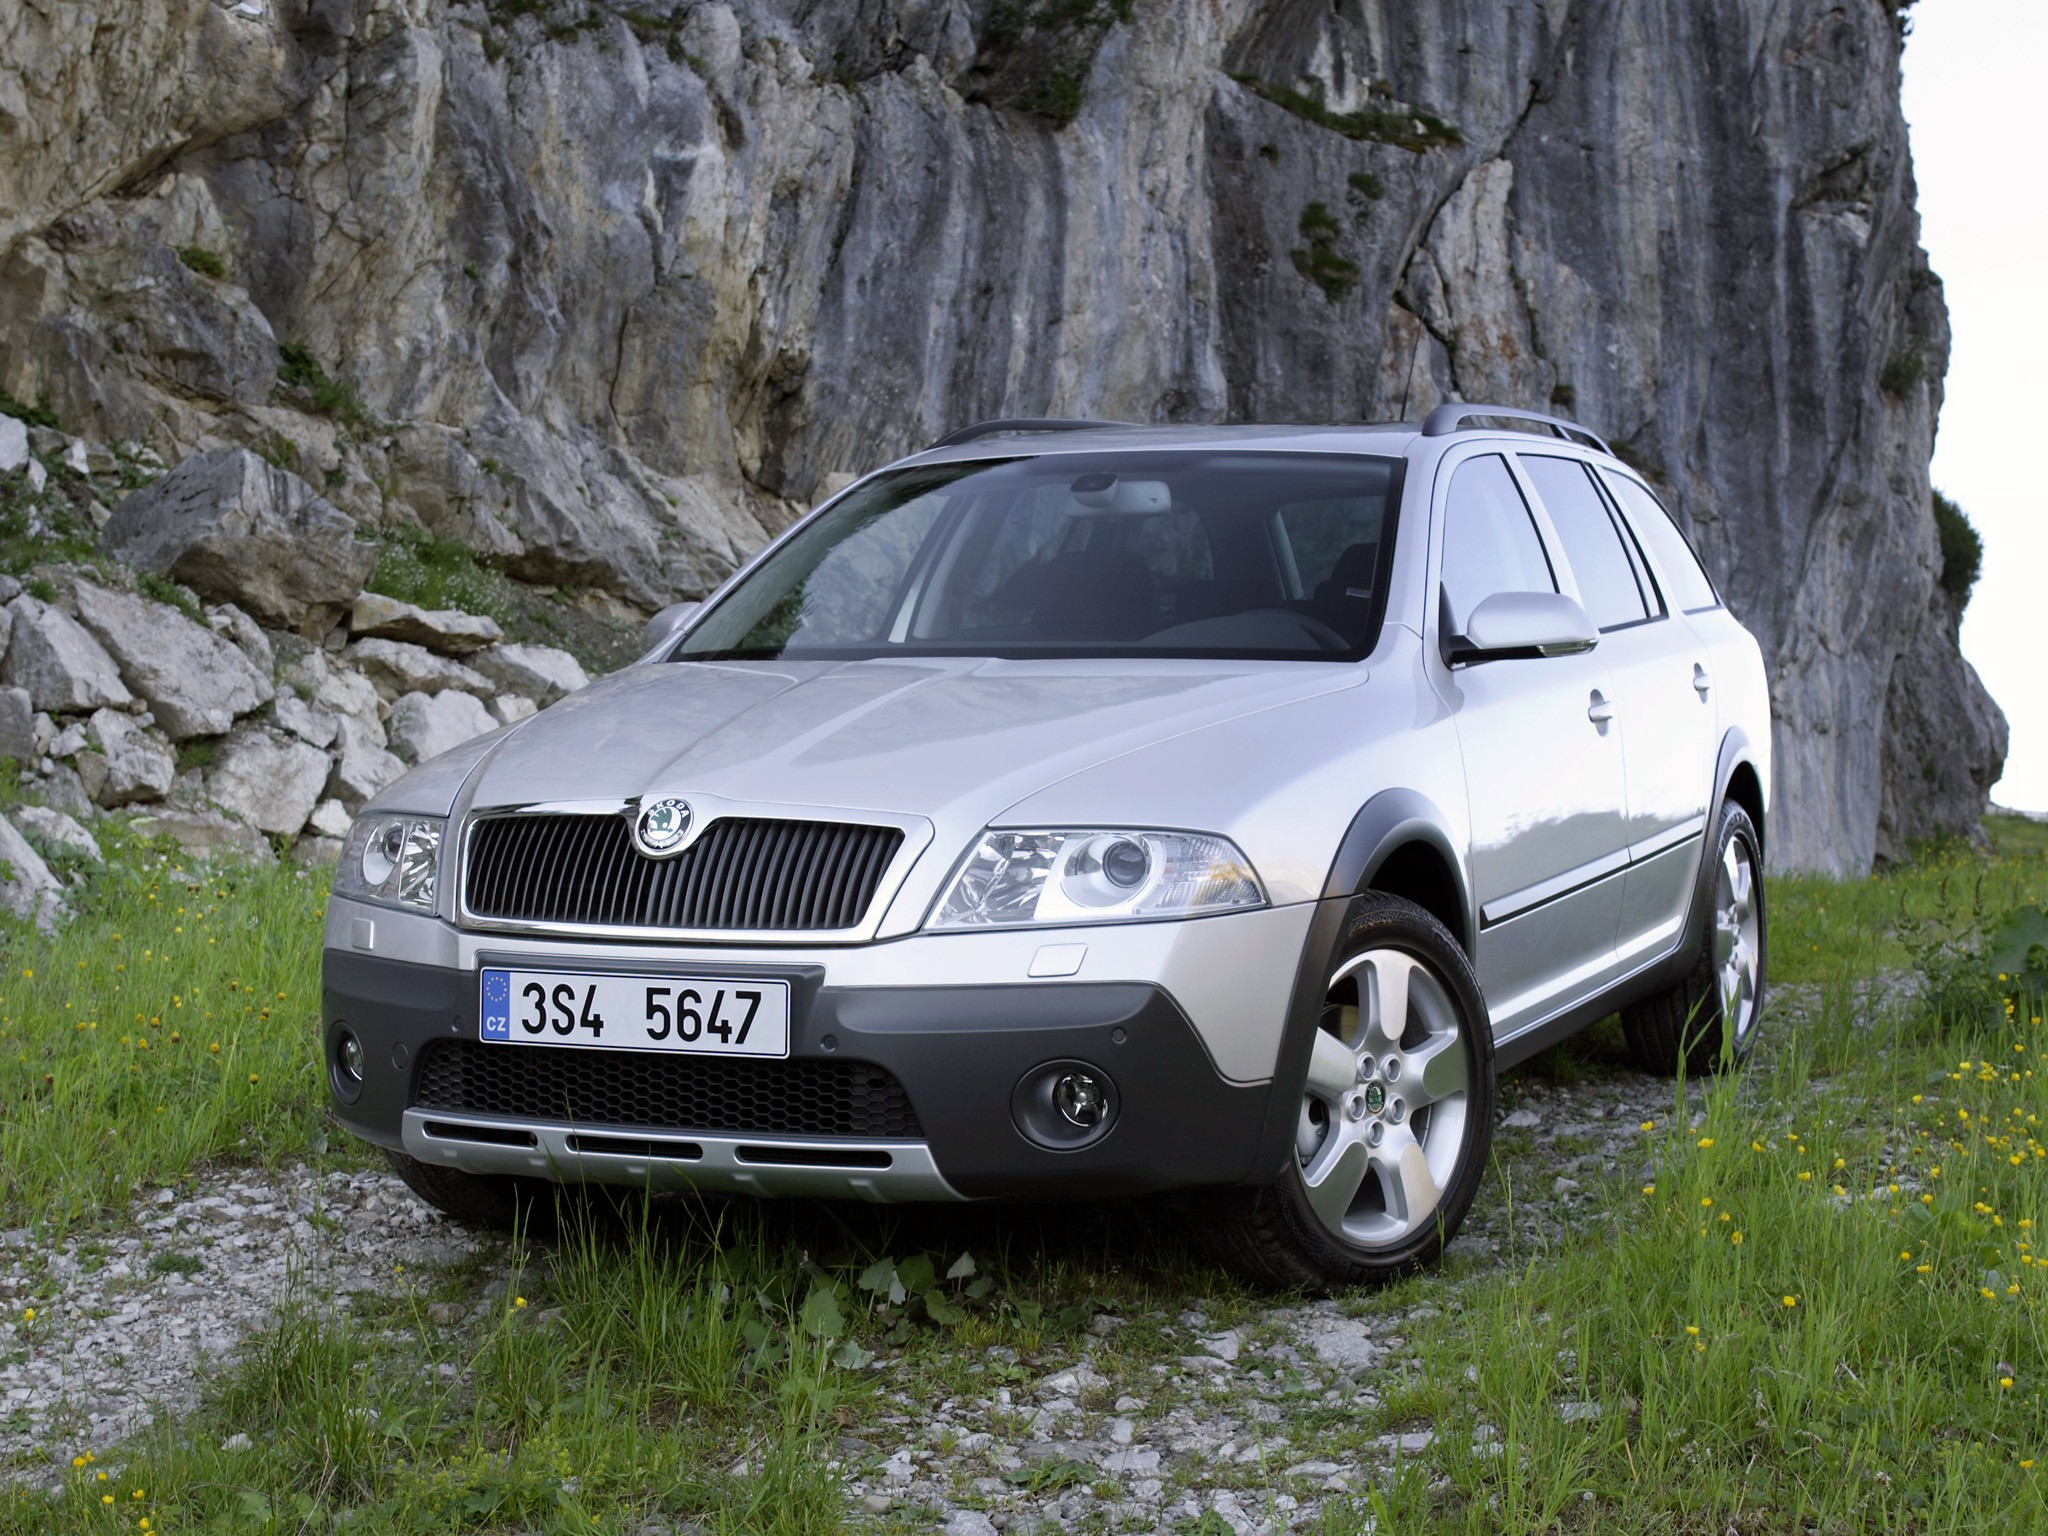 skoda octavia scout specs 2006 2007 2008 autoevolution. Black Bedroom Furniture Sets. Home Design Ideas